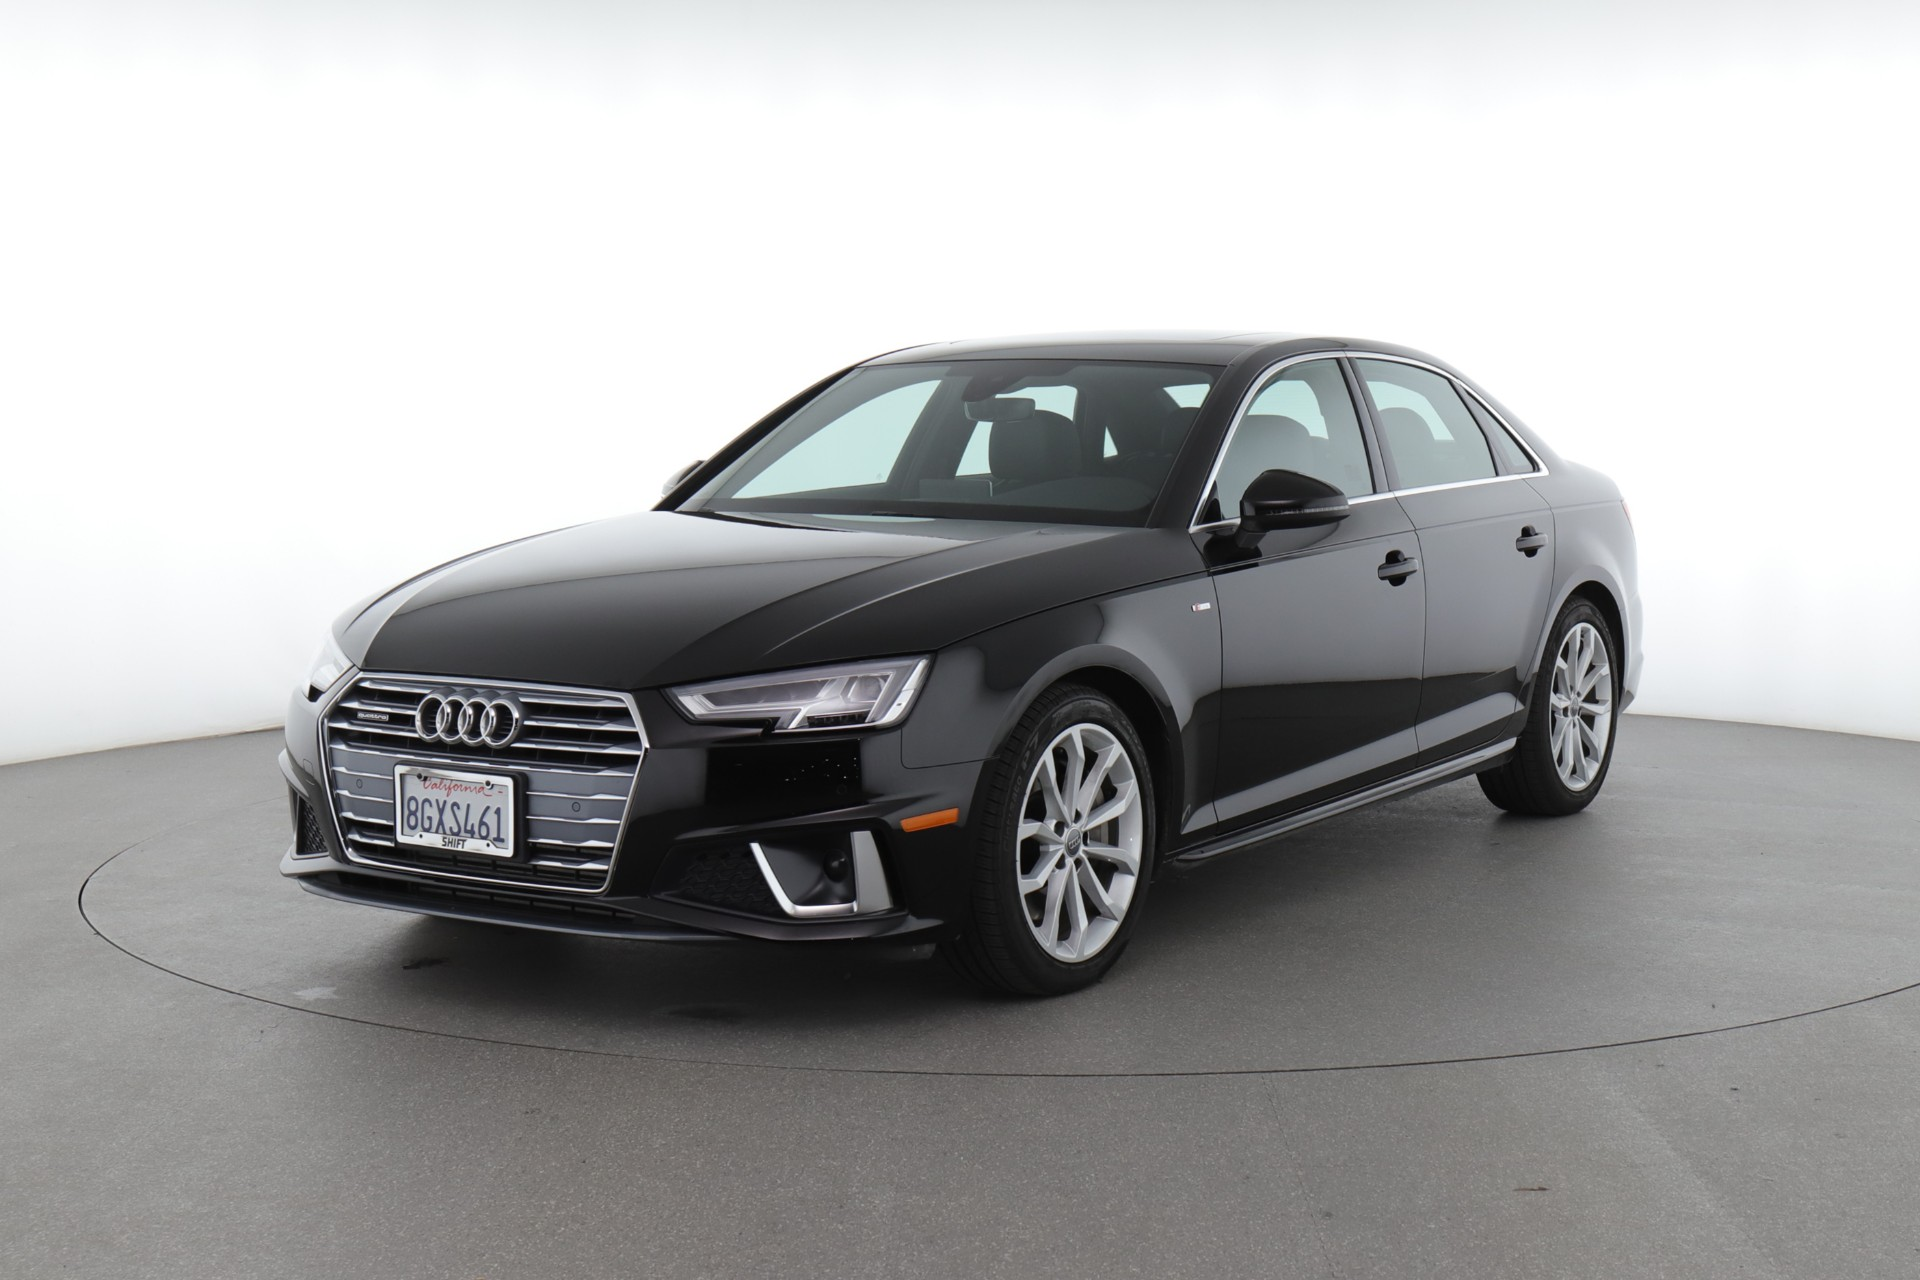 How Much Is An Audi A4?